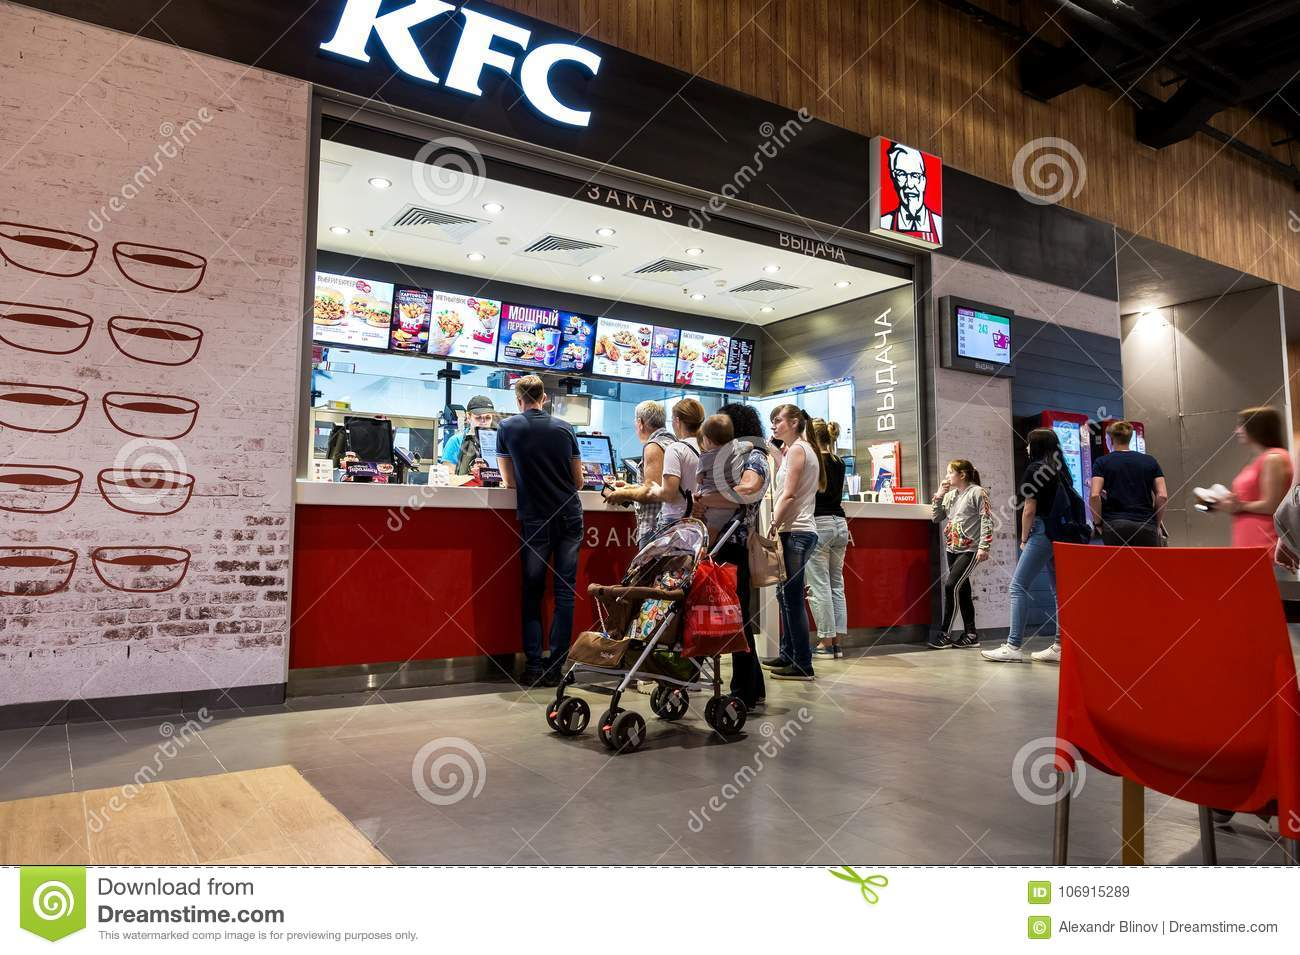 Chain of fast food restaurants KFS reviews and get a discount: review options 66